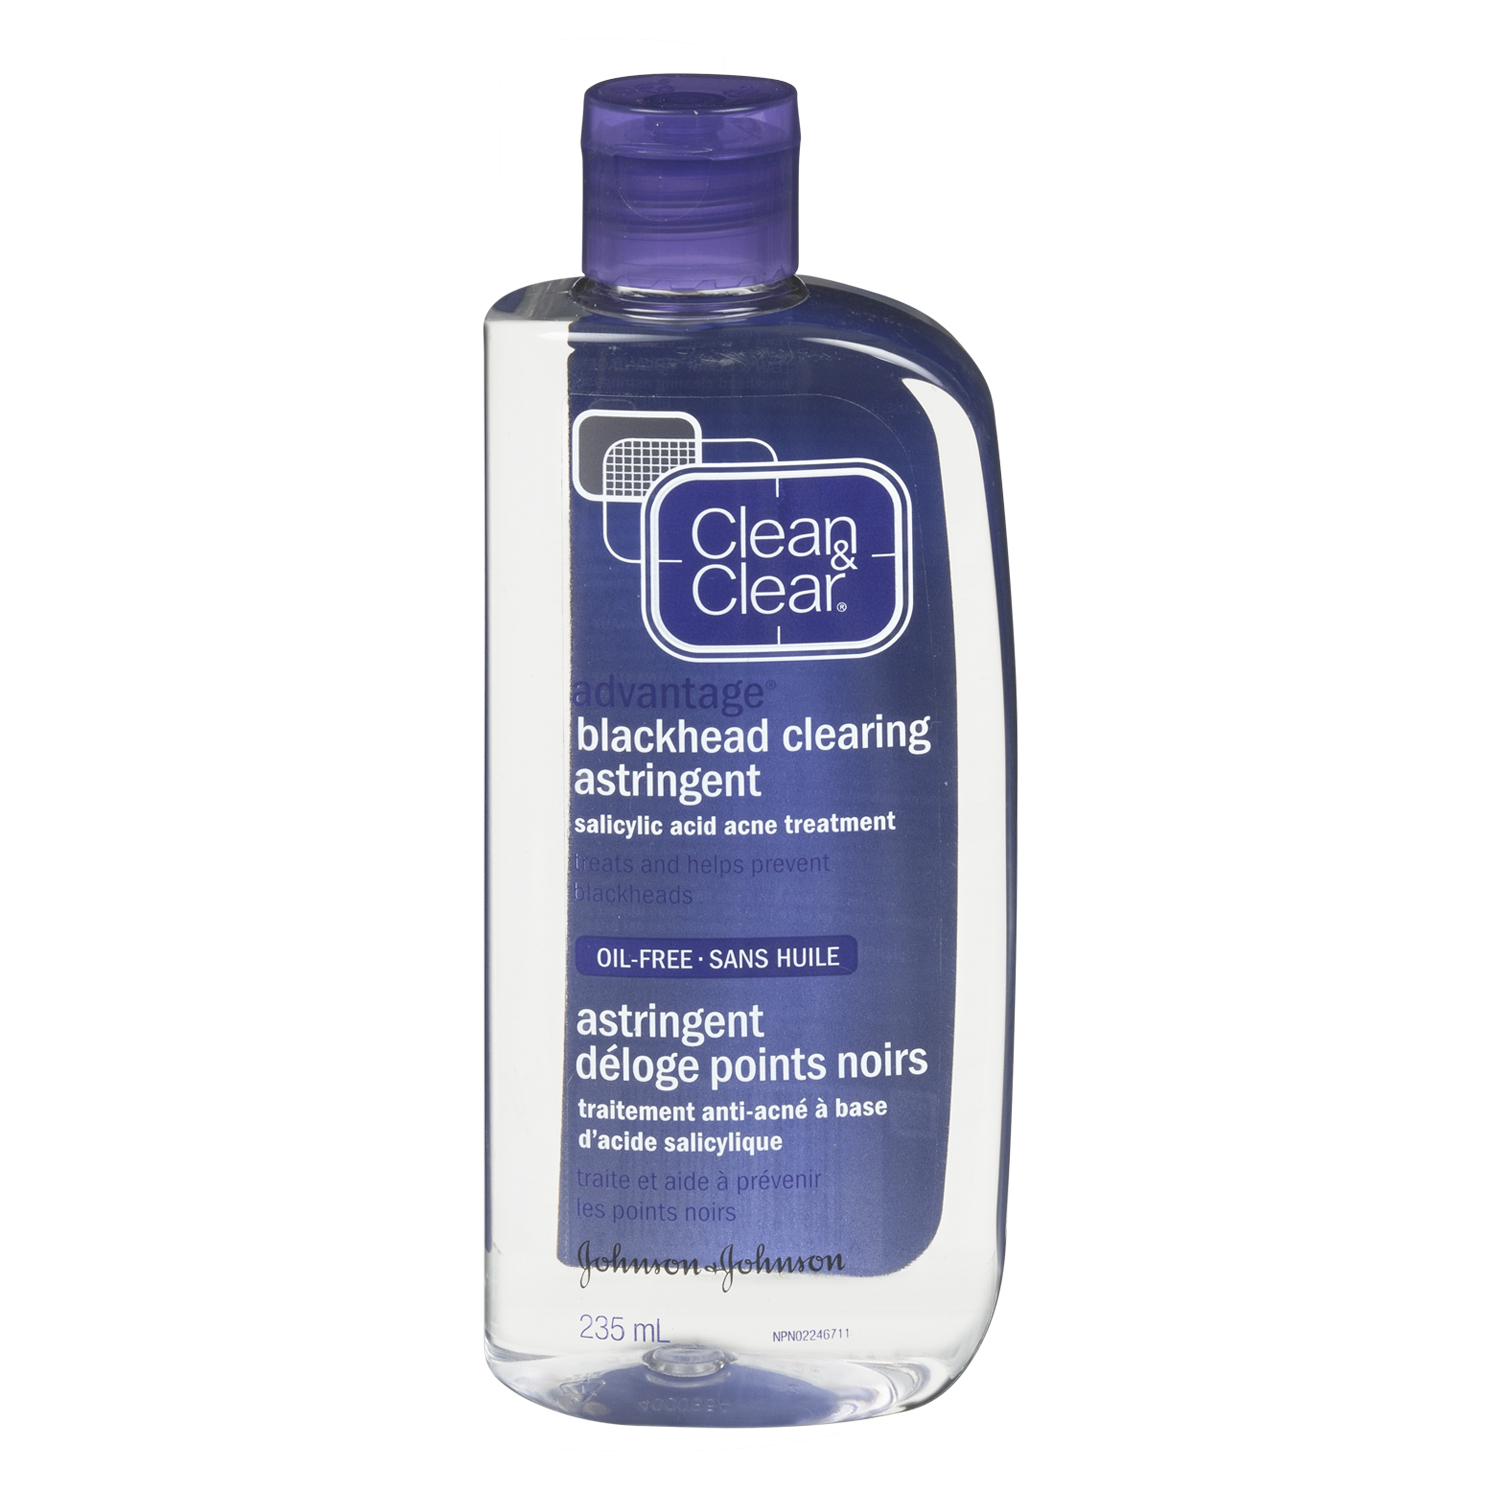 Clean & Clear Blackhead Clearing Astringent, Oil-Free